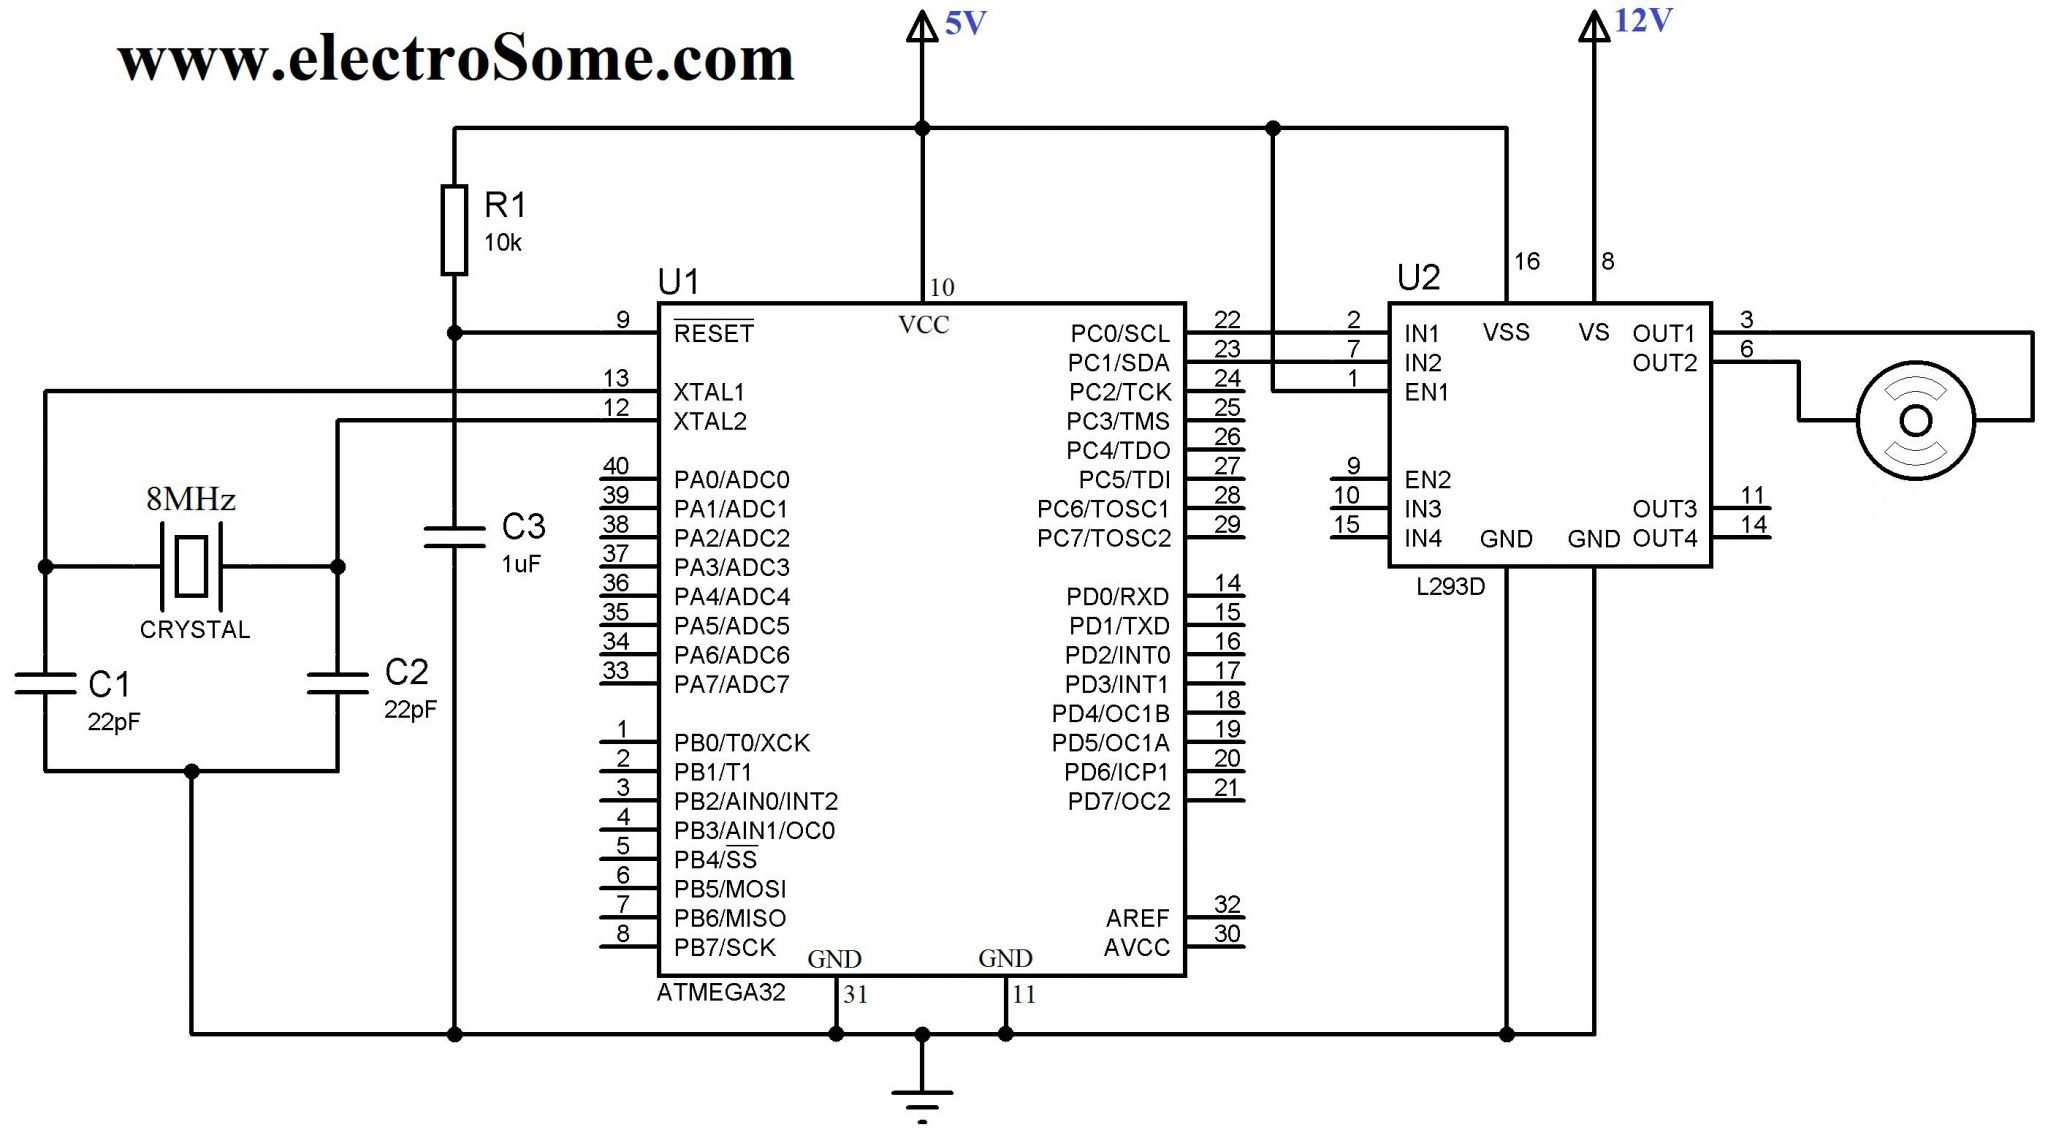 Radios Retro likewise Marine Tachometer Diesel Alternator additionally Npn Transistor Analysis How Is Collector Current Determined besides Decade Counter 4017 further Cadsoft Eagle how to make parts tutorial. on ic schematic symbols